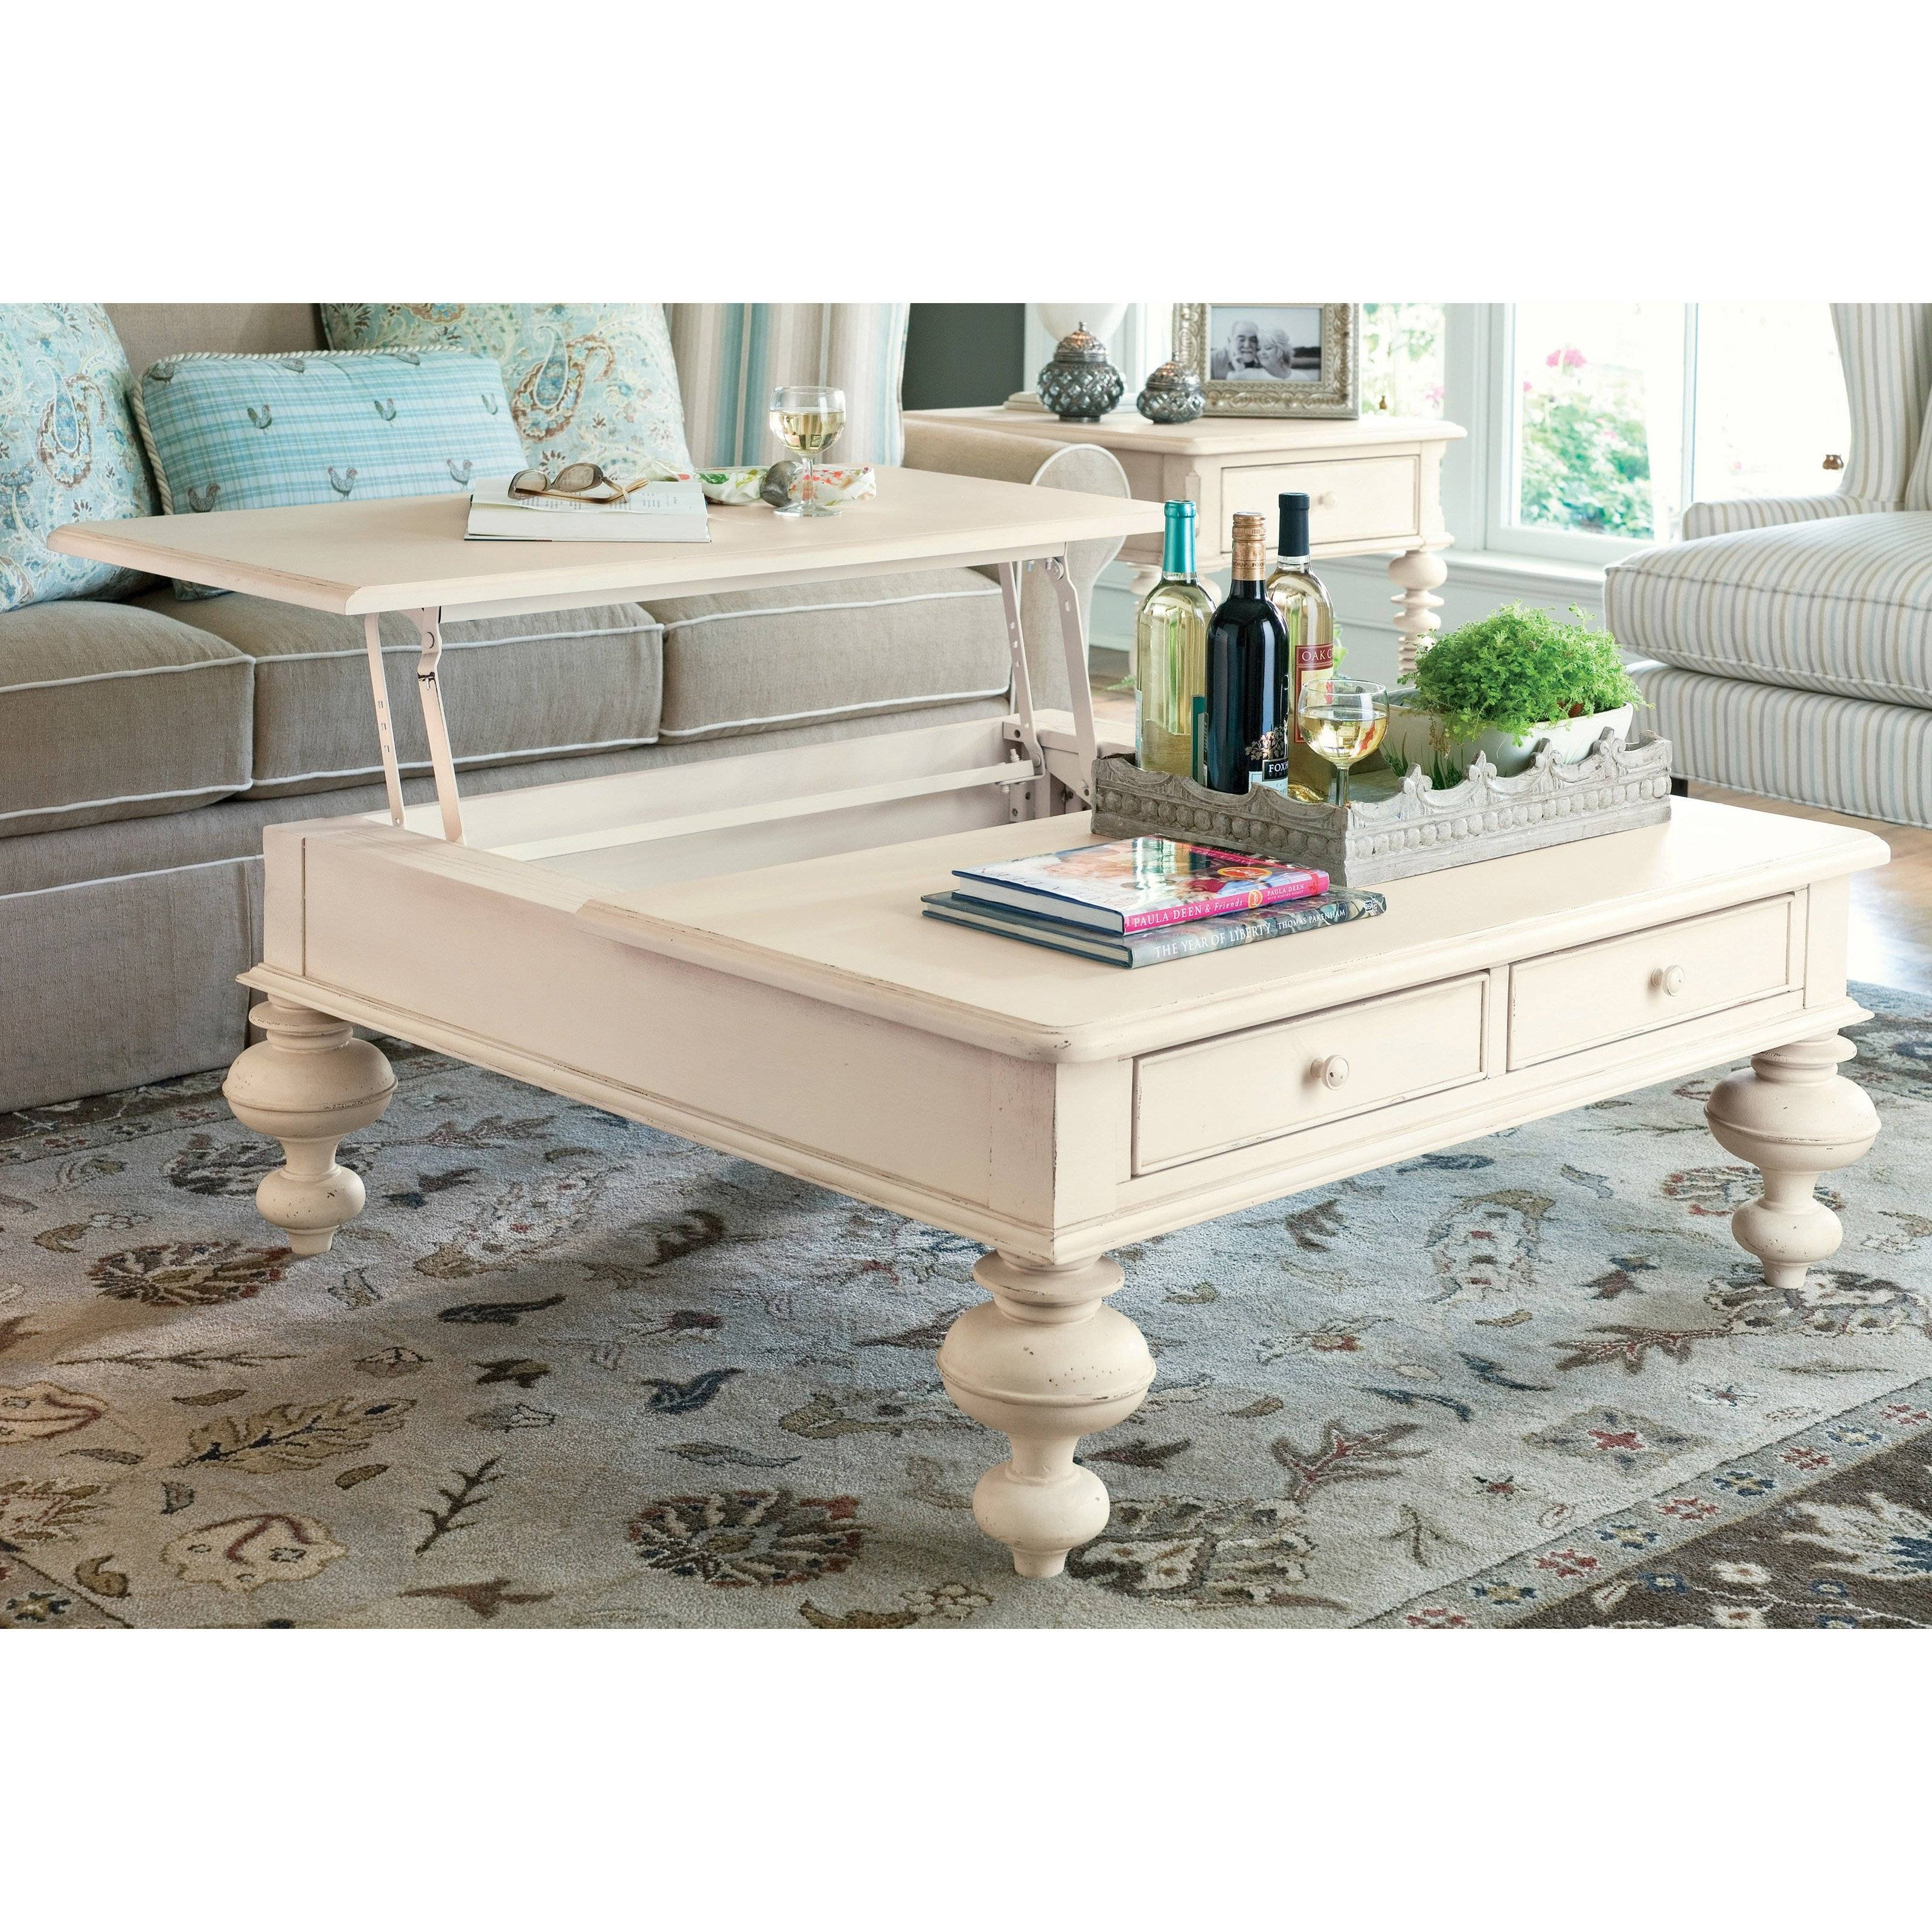 Paula Deen Home Put Your Feet Up Square Linen Wood Lift Top Coffee intended for Lift Up Top Coffee Tables (Image 22 of 30)